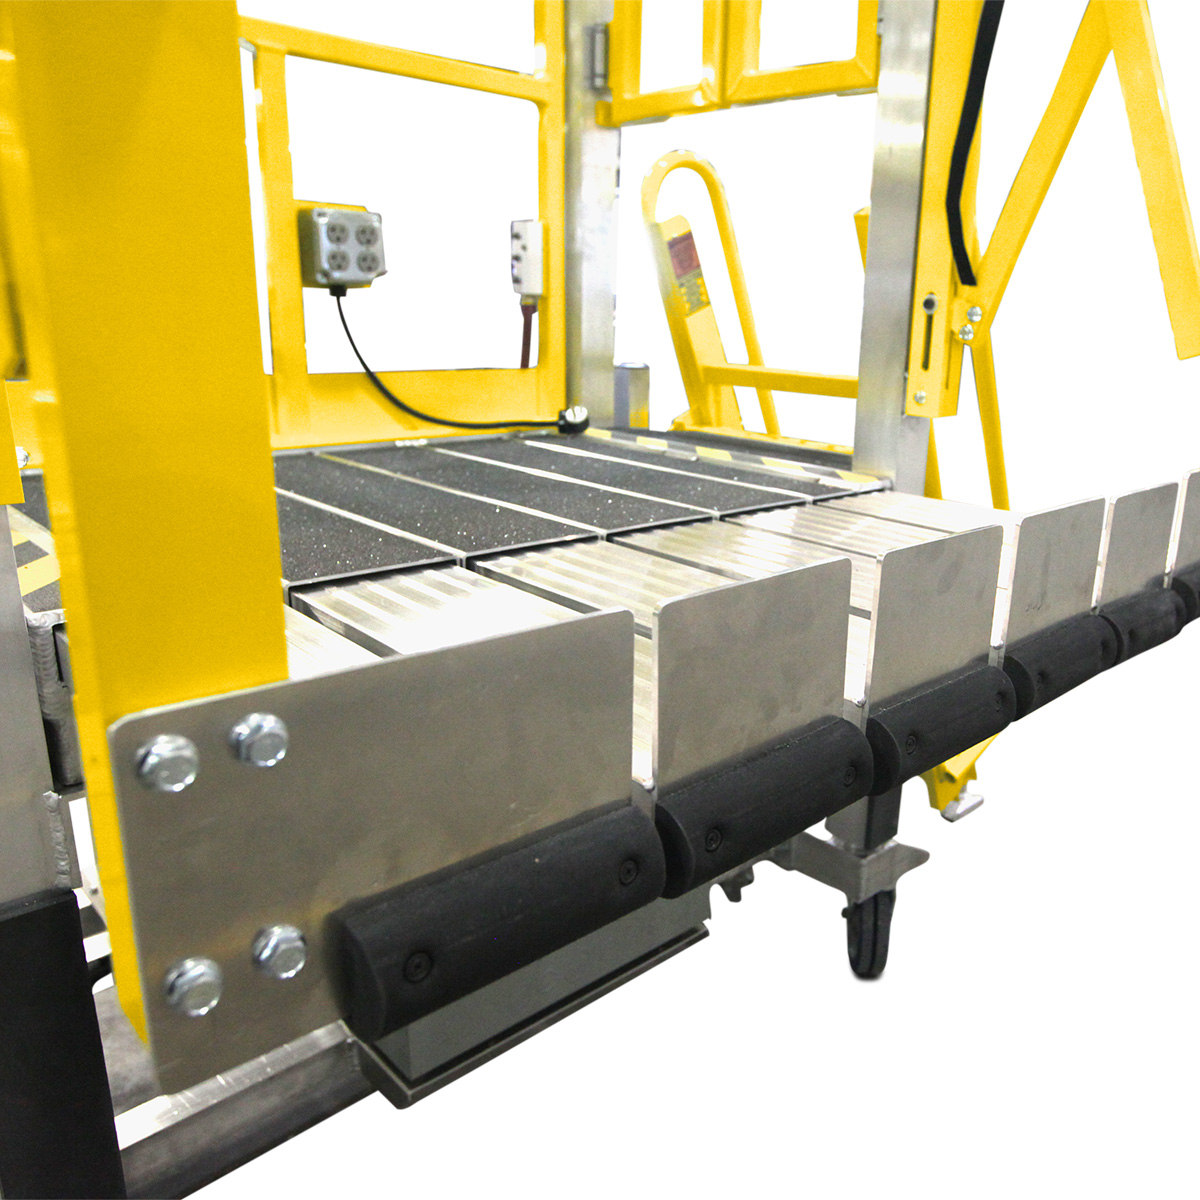 OSHA compliant toeboards for portable aluminum work platforms and deck extensions for cantilever overreach access.